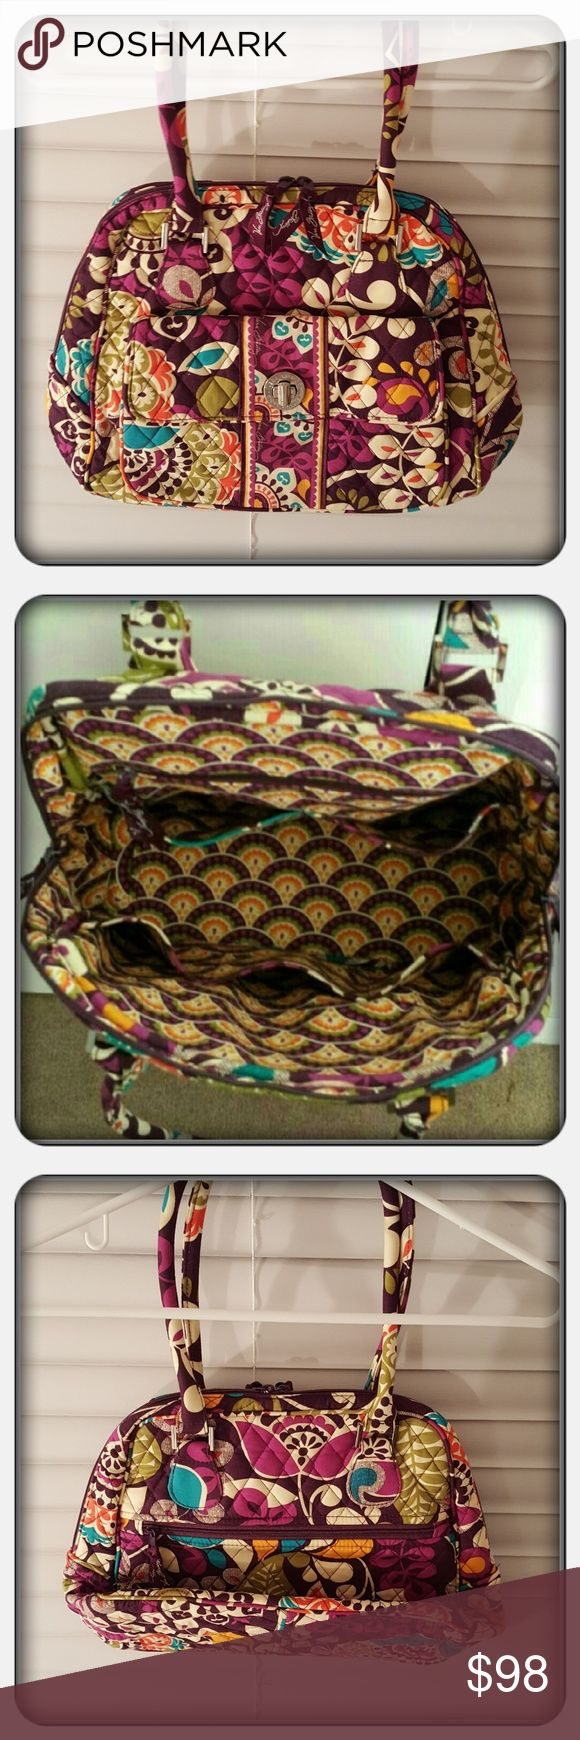 NWOT Vera Bradley Turnlock Satchel Brand New Never Used Vera Bradley Turnlock Satchel In Retired And Rare Plum Crazy Pattern. This Satchel Has So Much Space Plus Multiple Interior Slip Pockets, Interior Zippered Pocket, Big Turnlock Front Pocket On Exterior, Exterior Zippered Pocket & Double Rolled Handles. This Bag Is In Excellent Condition 🚫 PAYPAL 🚫 TRADES 🚫 OFFERS PRICE IS FIRM ❤ Vera Bradley Bags Satchels